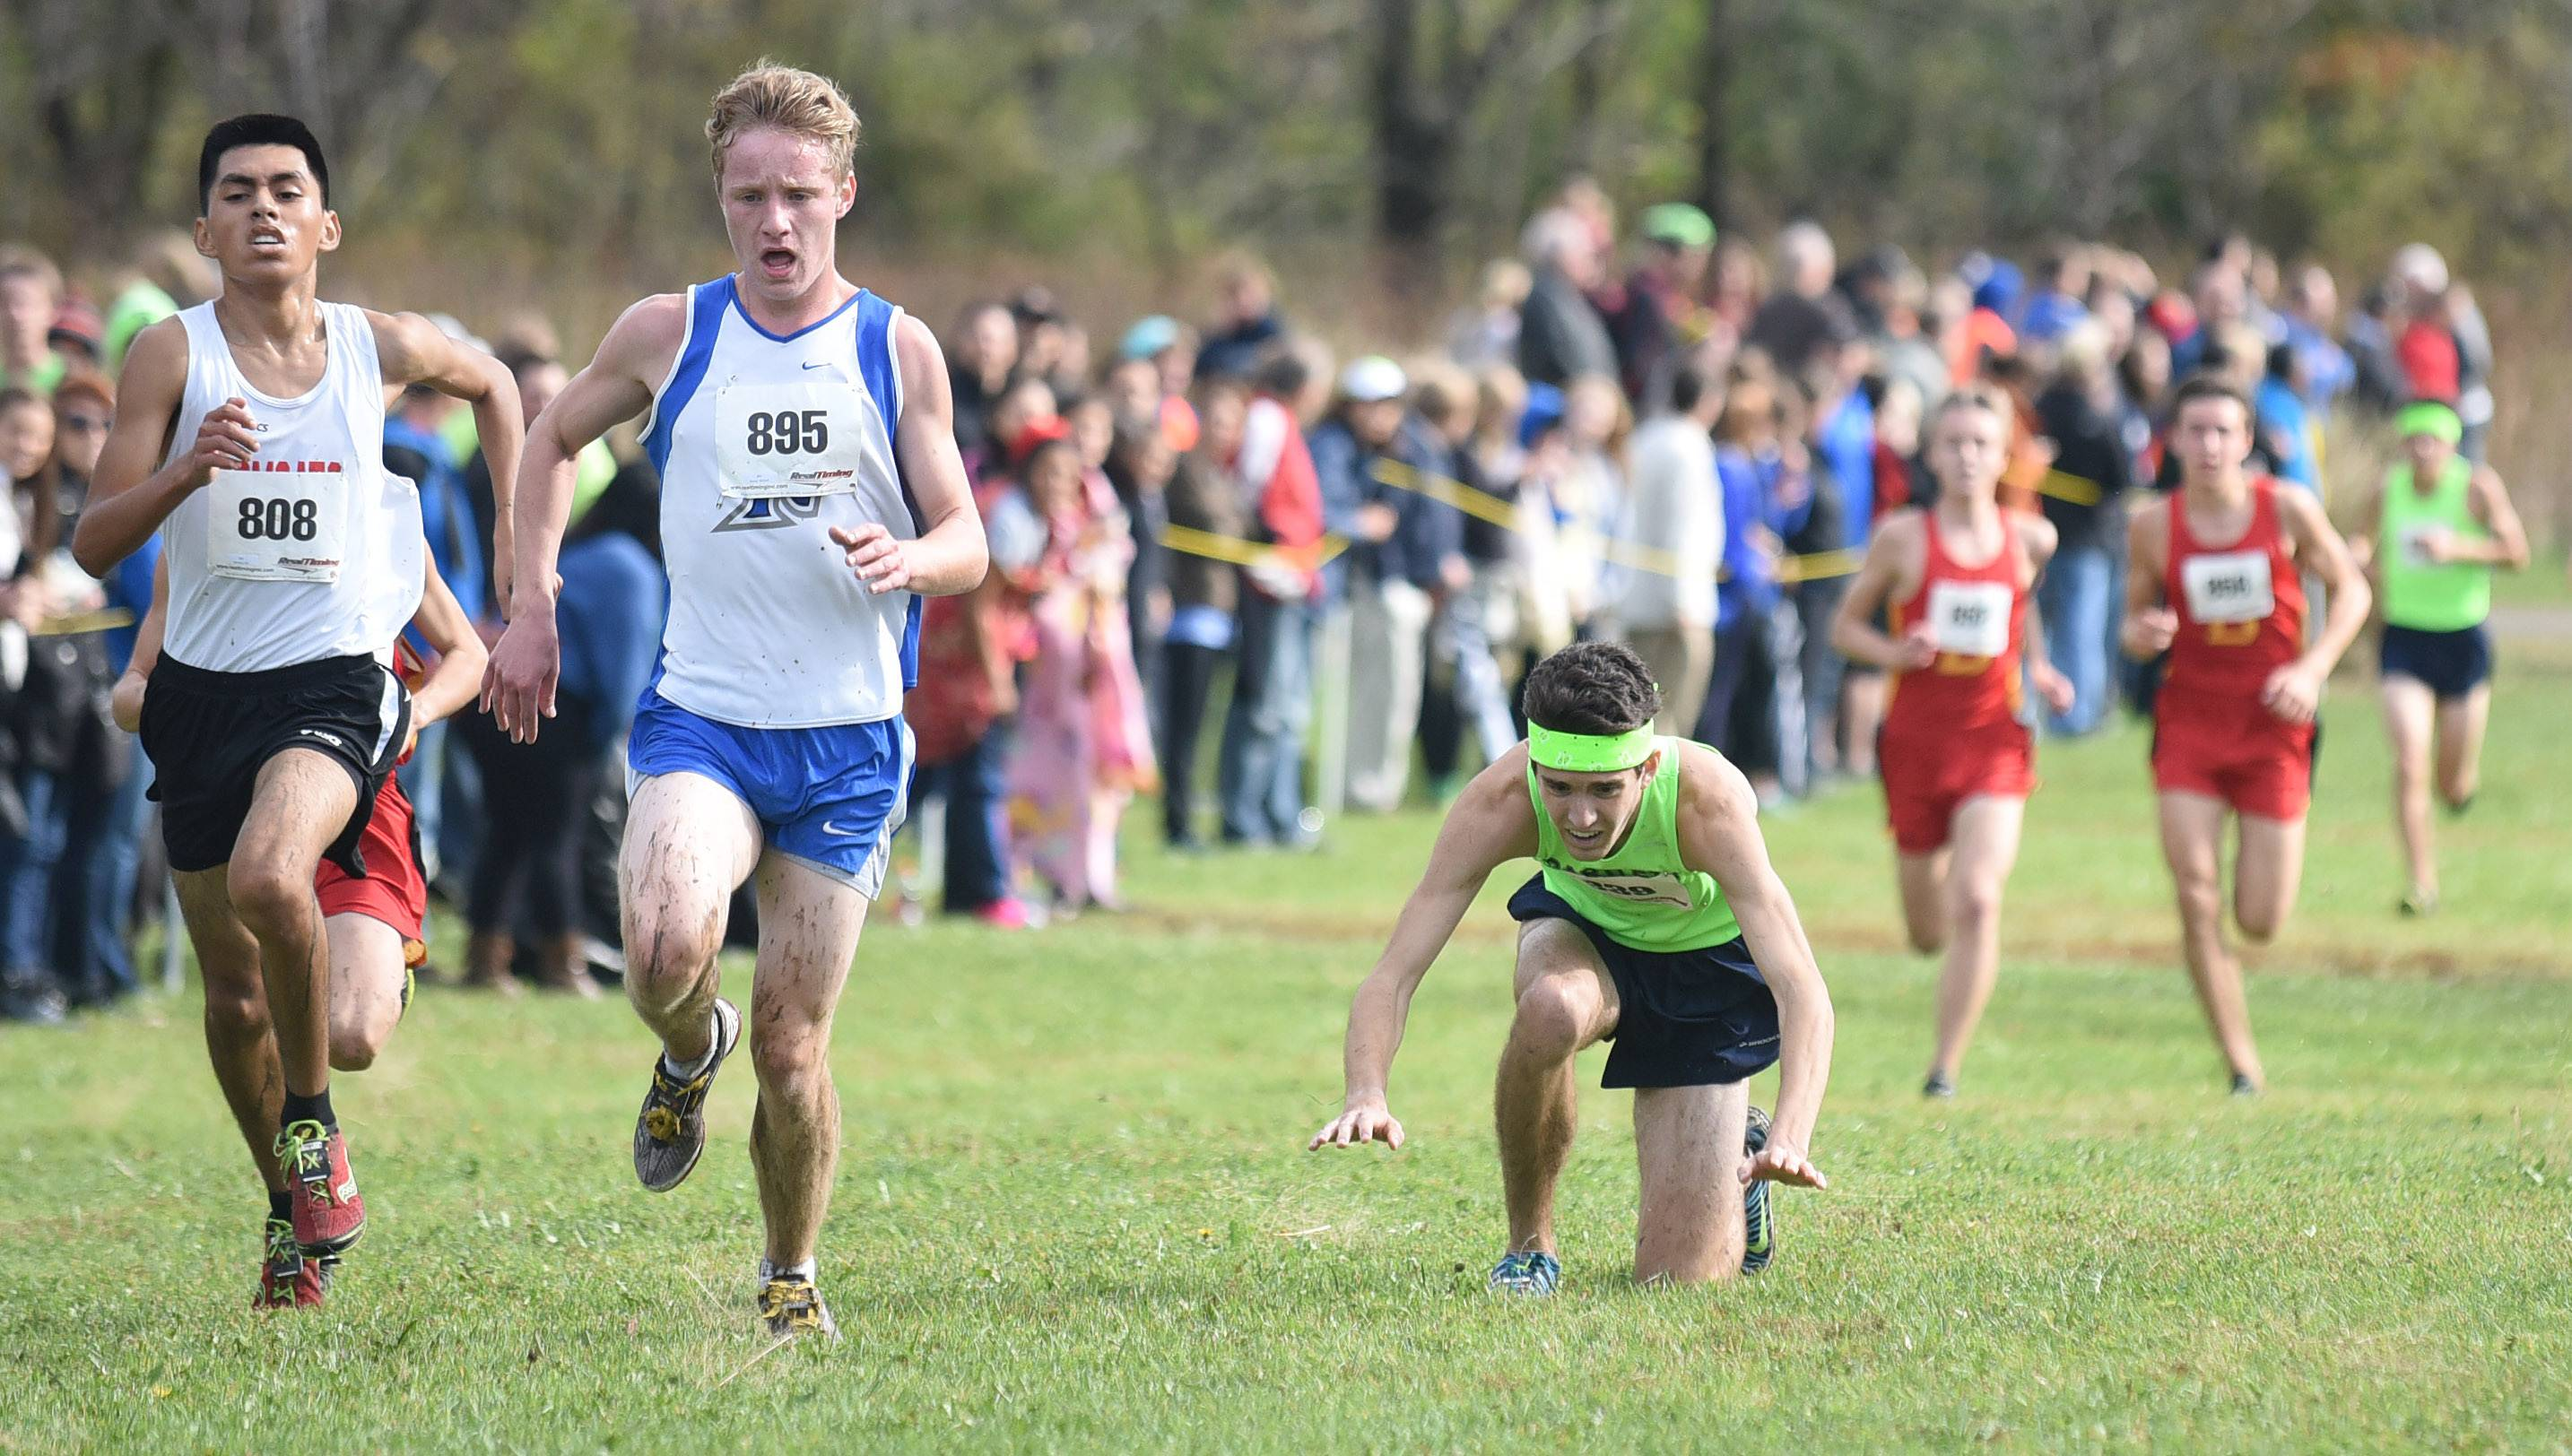 Bartlett's Justin Isla falls as he struggles to the finish line in the boys varsity race at the St. Charles North cross country regional on Saturday. He fell several times, but kept getting back up to finish the race.